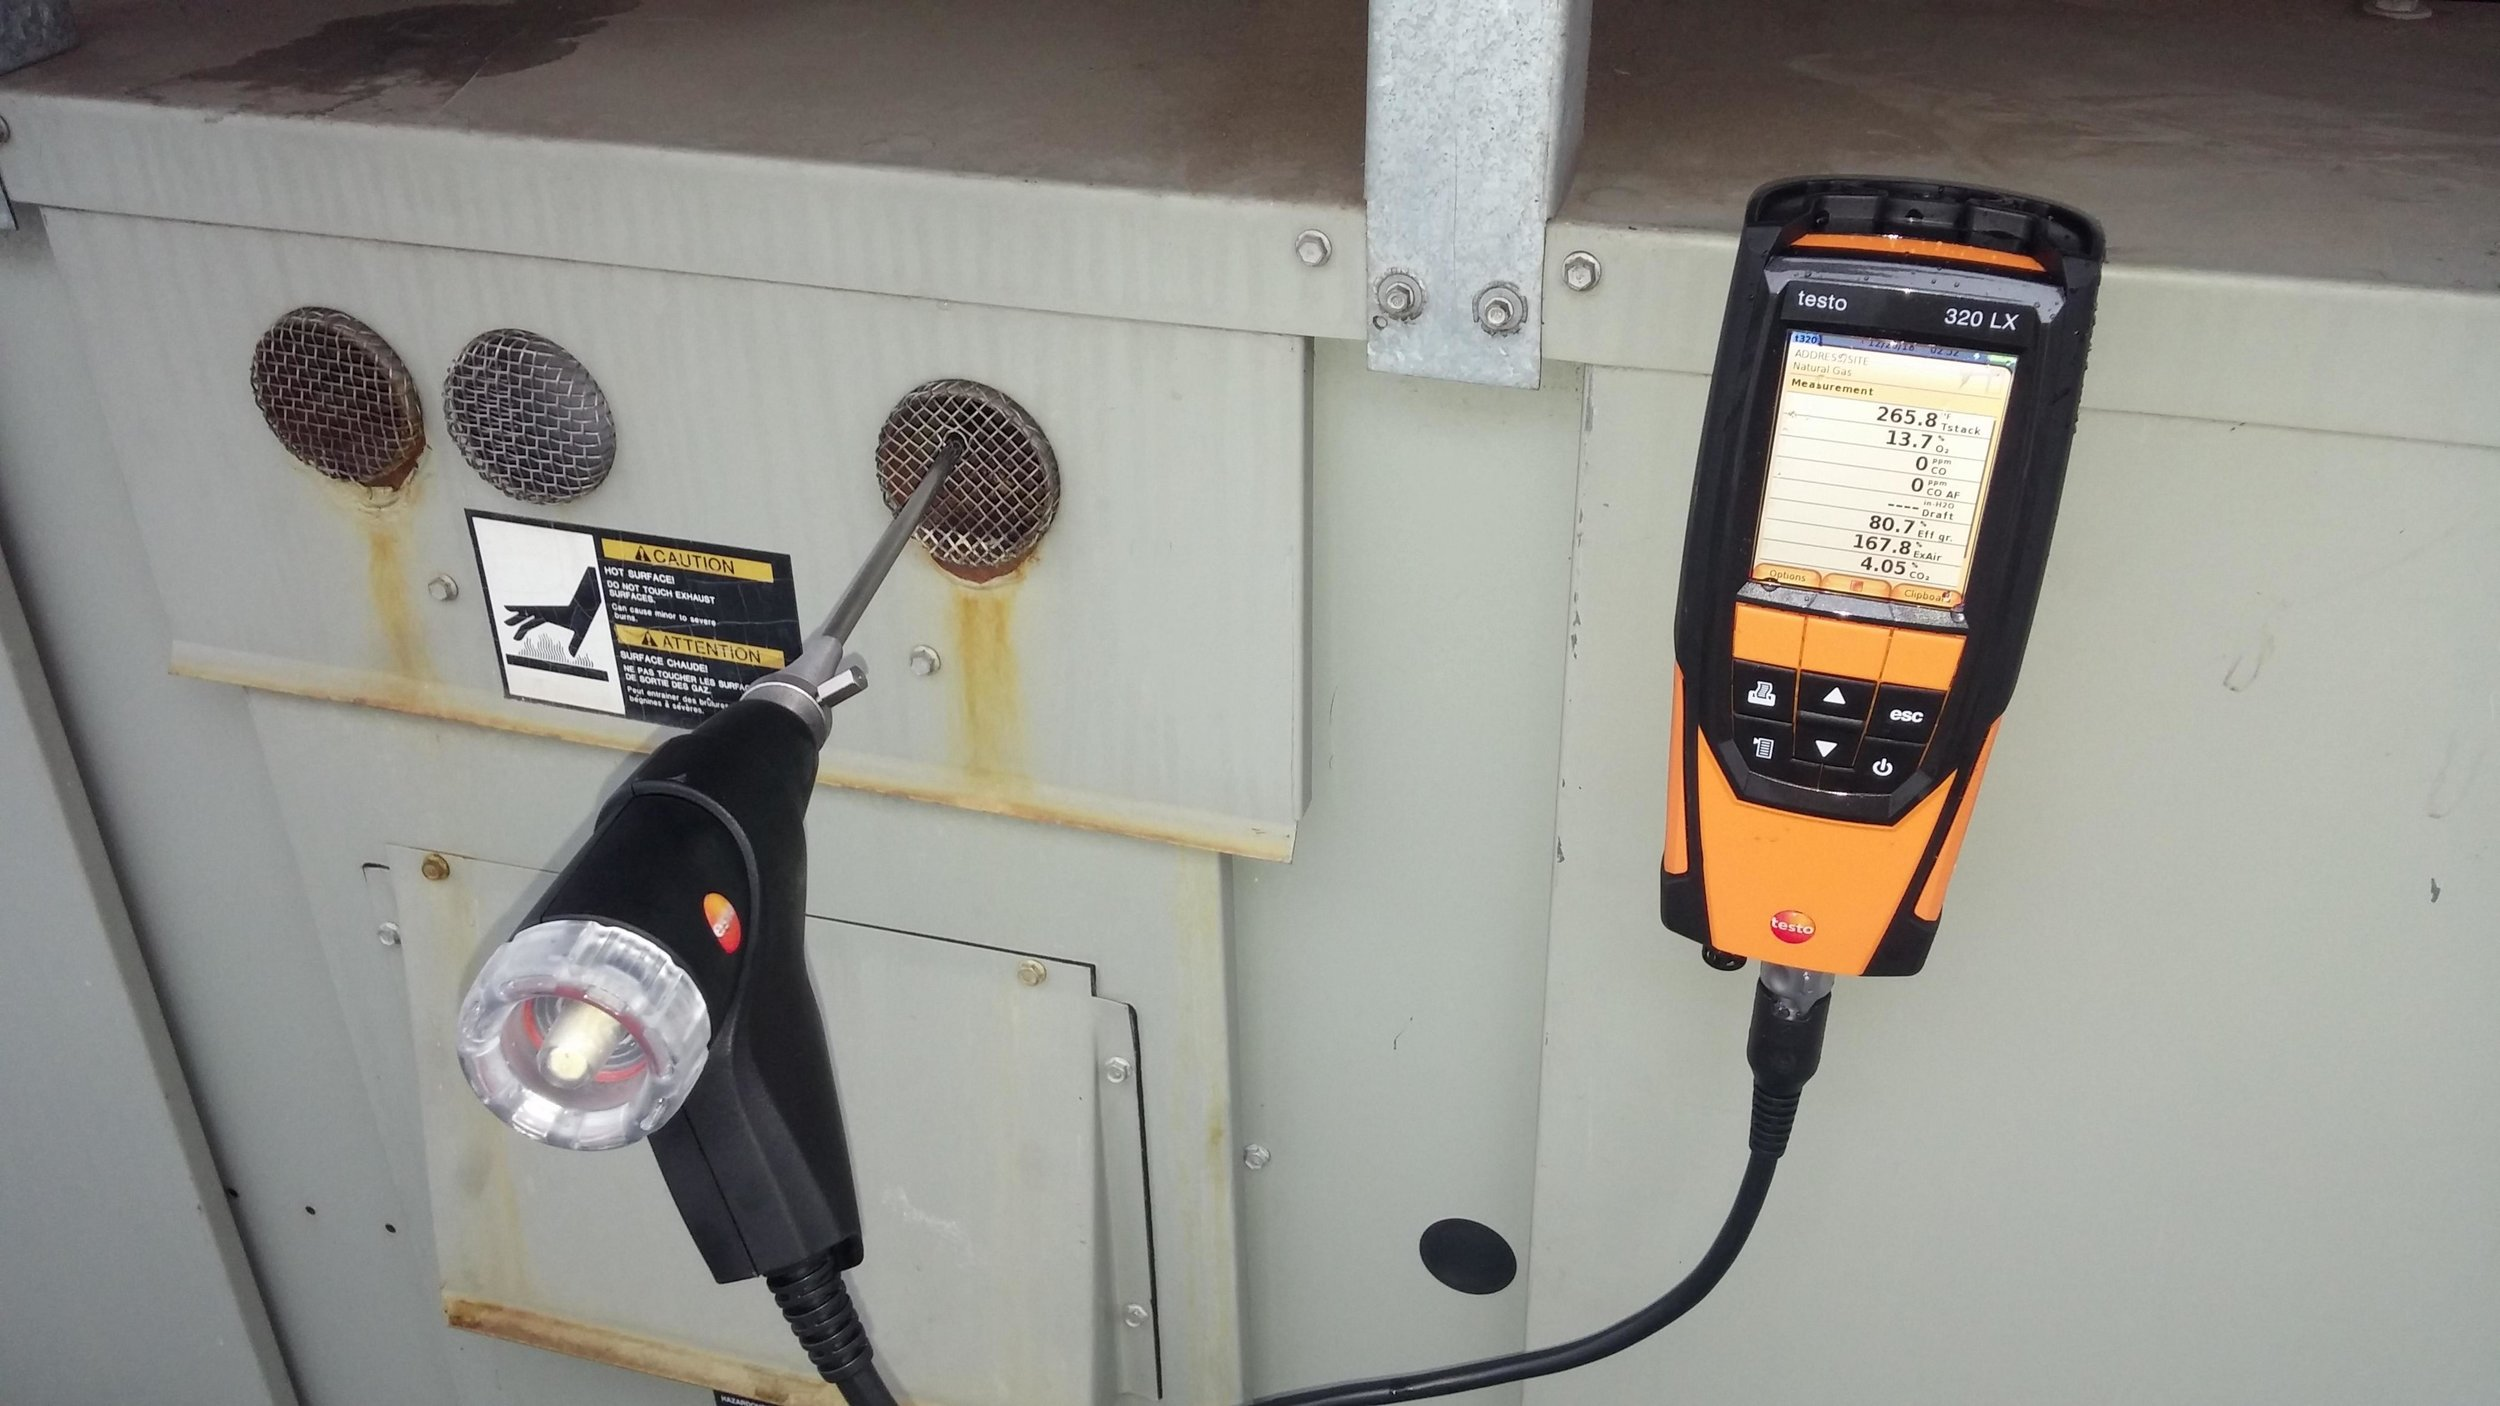 We test all types of commercial equipment - Combustion testing on gas fired equipment. We can diagnose how efficient or non efficient the equipment is operating. We can also tell if it has a cracked heat exchanger.